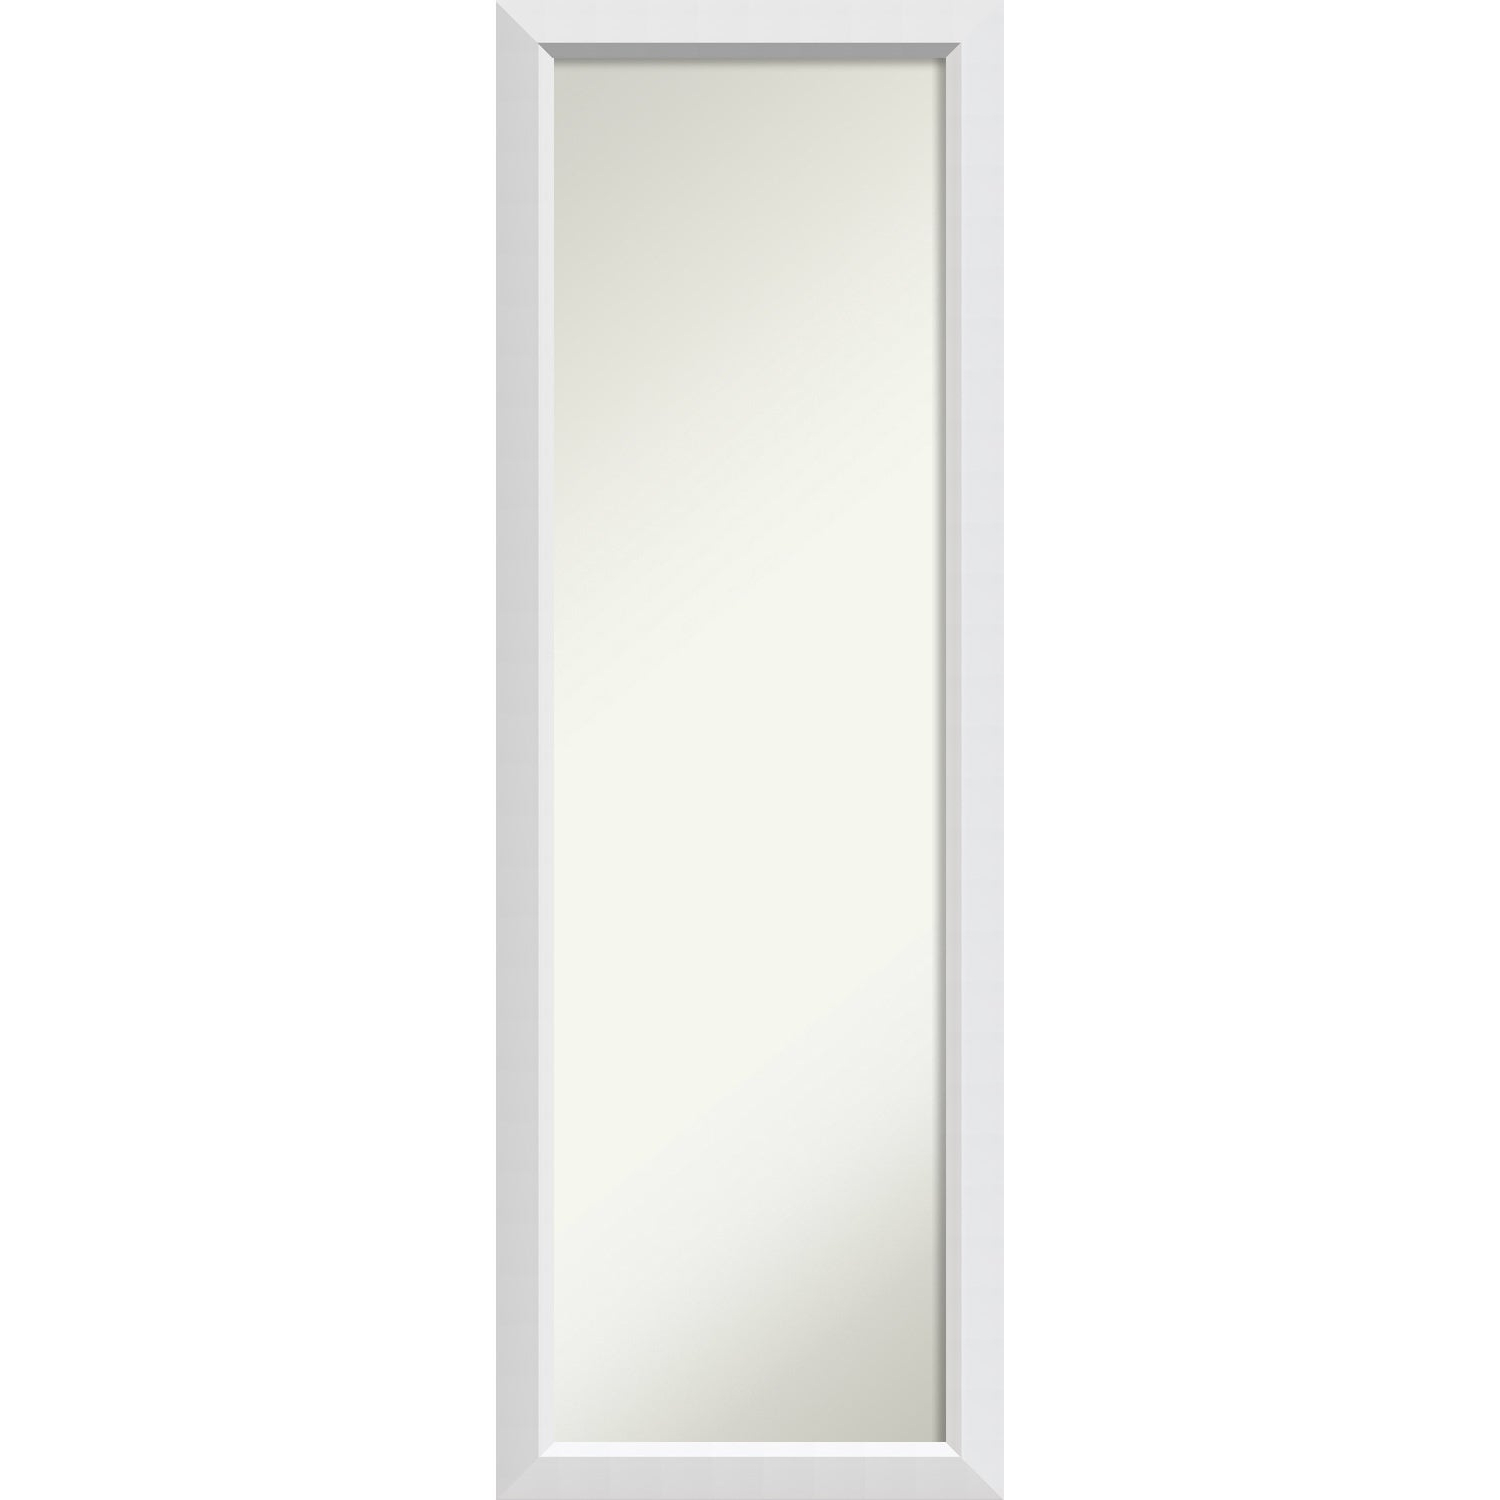 Latest Shop On The Door Full Length Wall Mirror, Blanco White 18 X 52 Inch Pertaining To Cheap Full Length Wall Mirrors (Gallery 4 of 20)